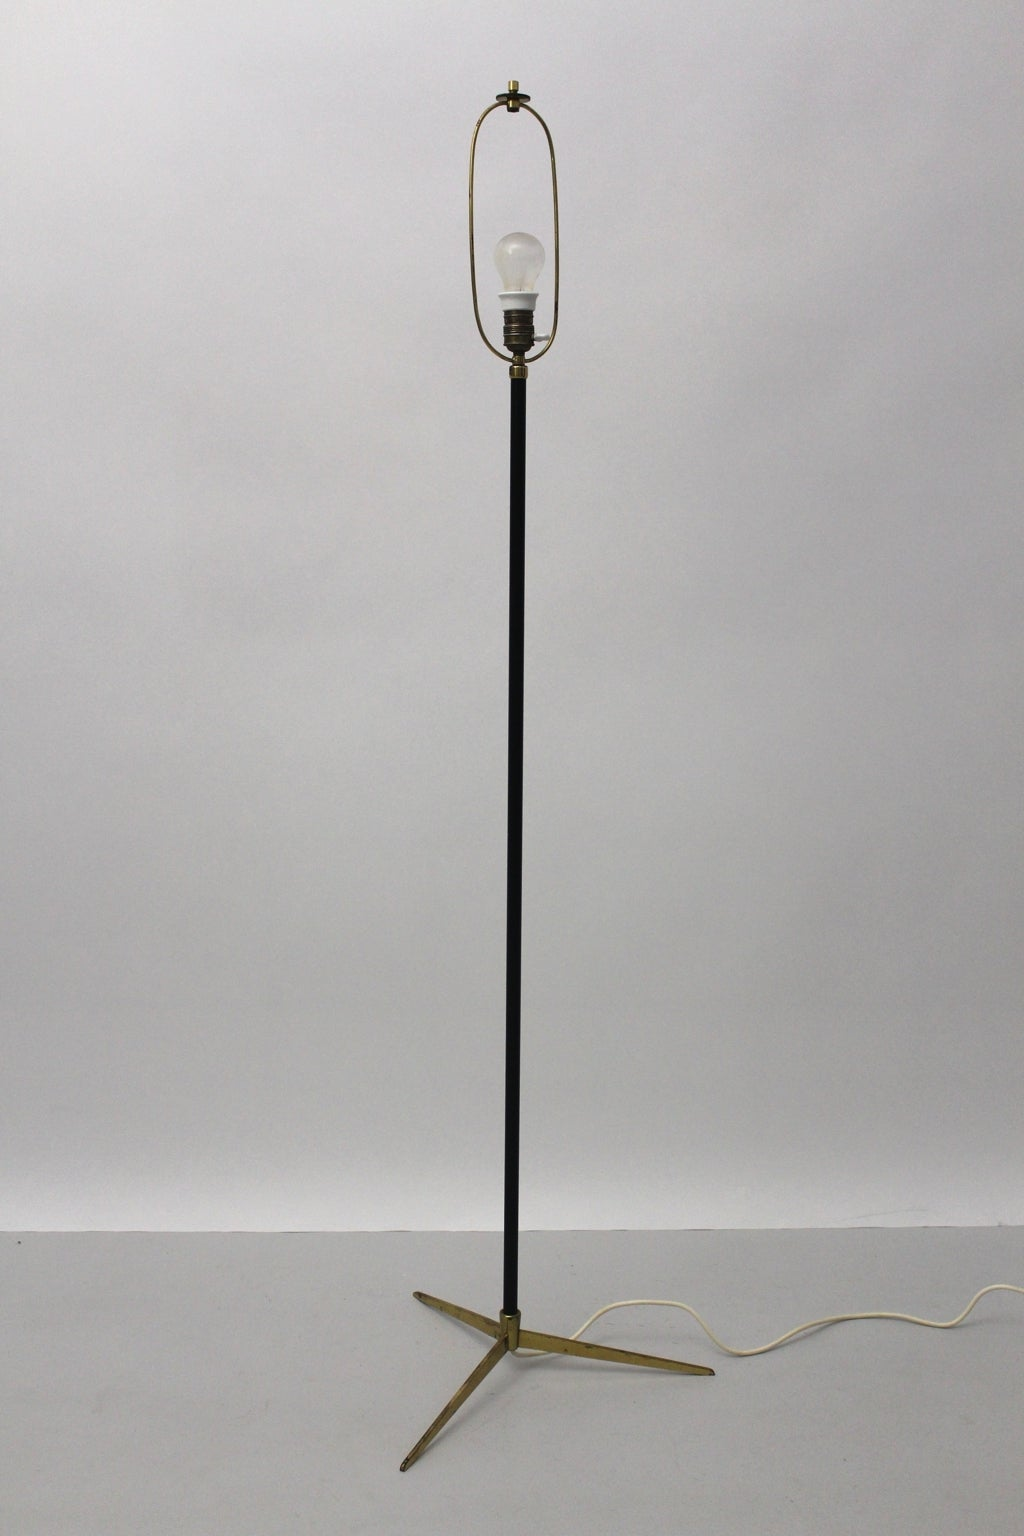 Floor Lamp Model No 2092 Micheline By J T Kalmar Vienna Austria 1960 For Sale At 1stdibs